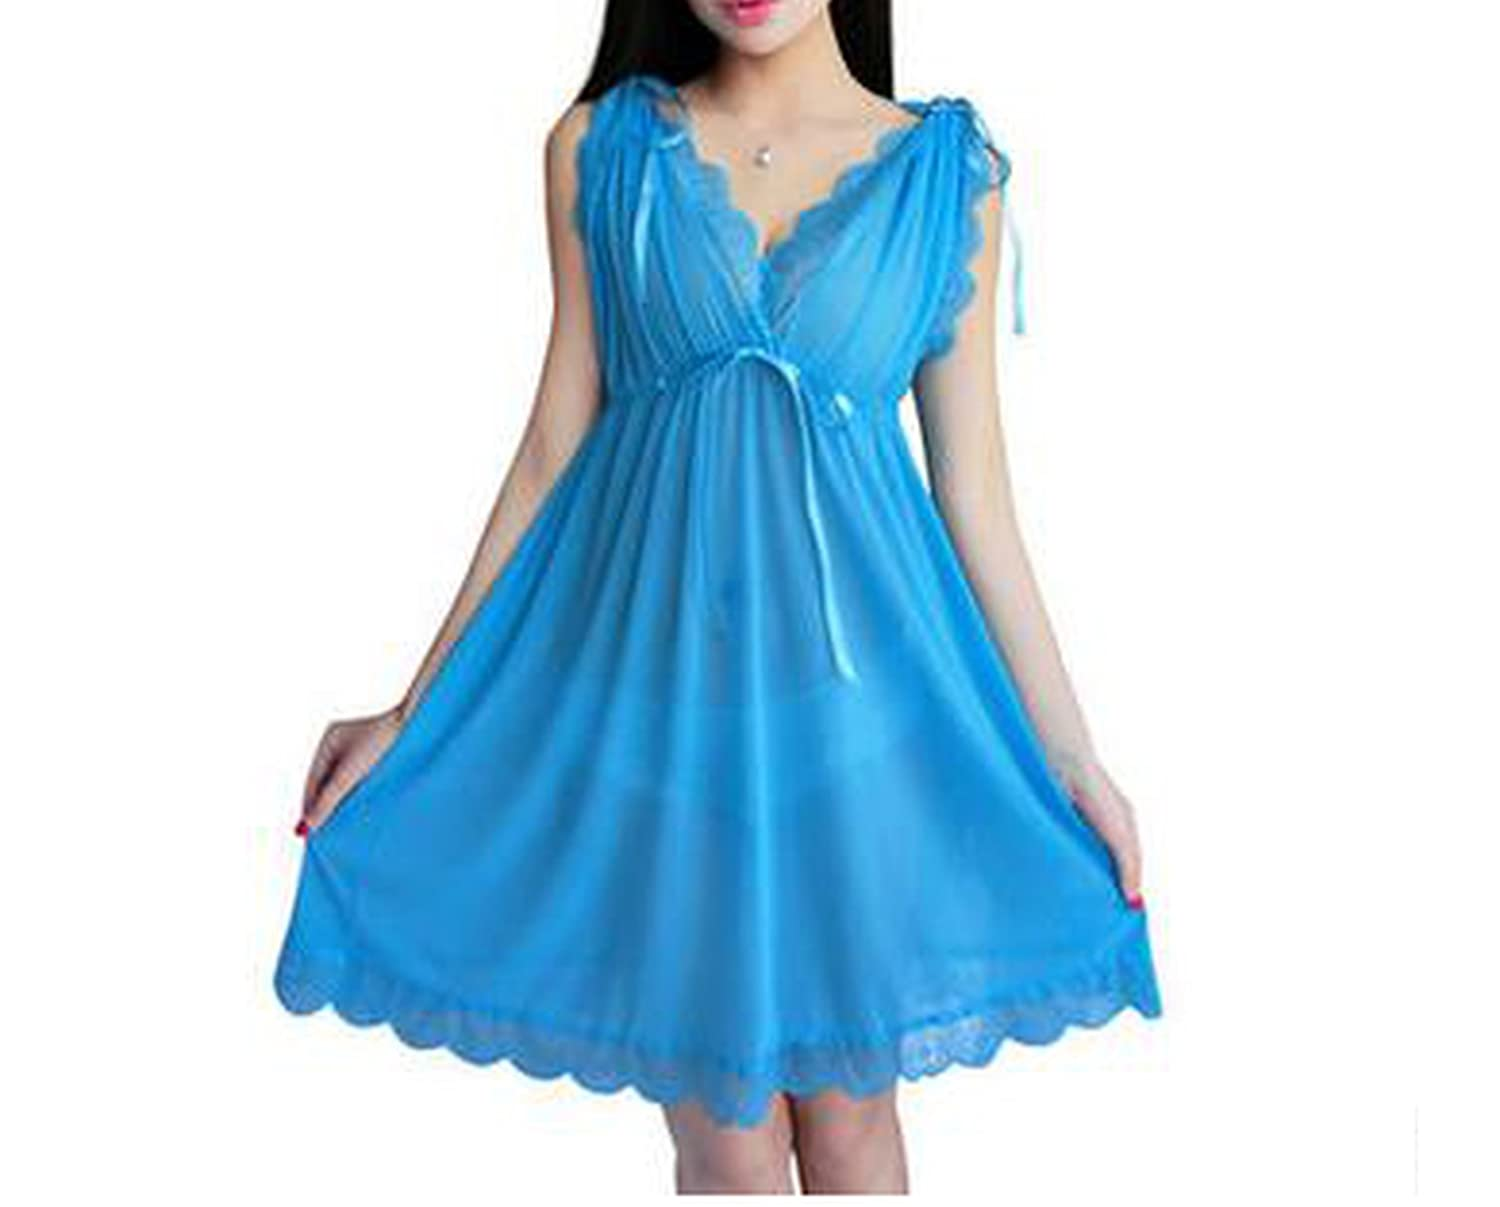 75ee8a7cf4 Meet the beauty Shirt Sleep Nightgowns Sleepwear Nightdress Women s Sexy  Sleepwear Sexy Women s Nightgown Women Sleep Wear Sets with g String